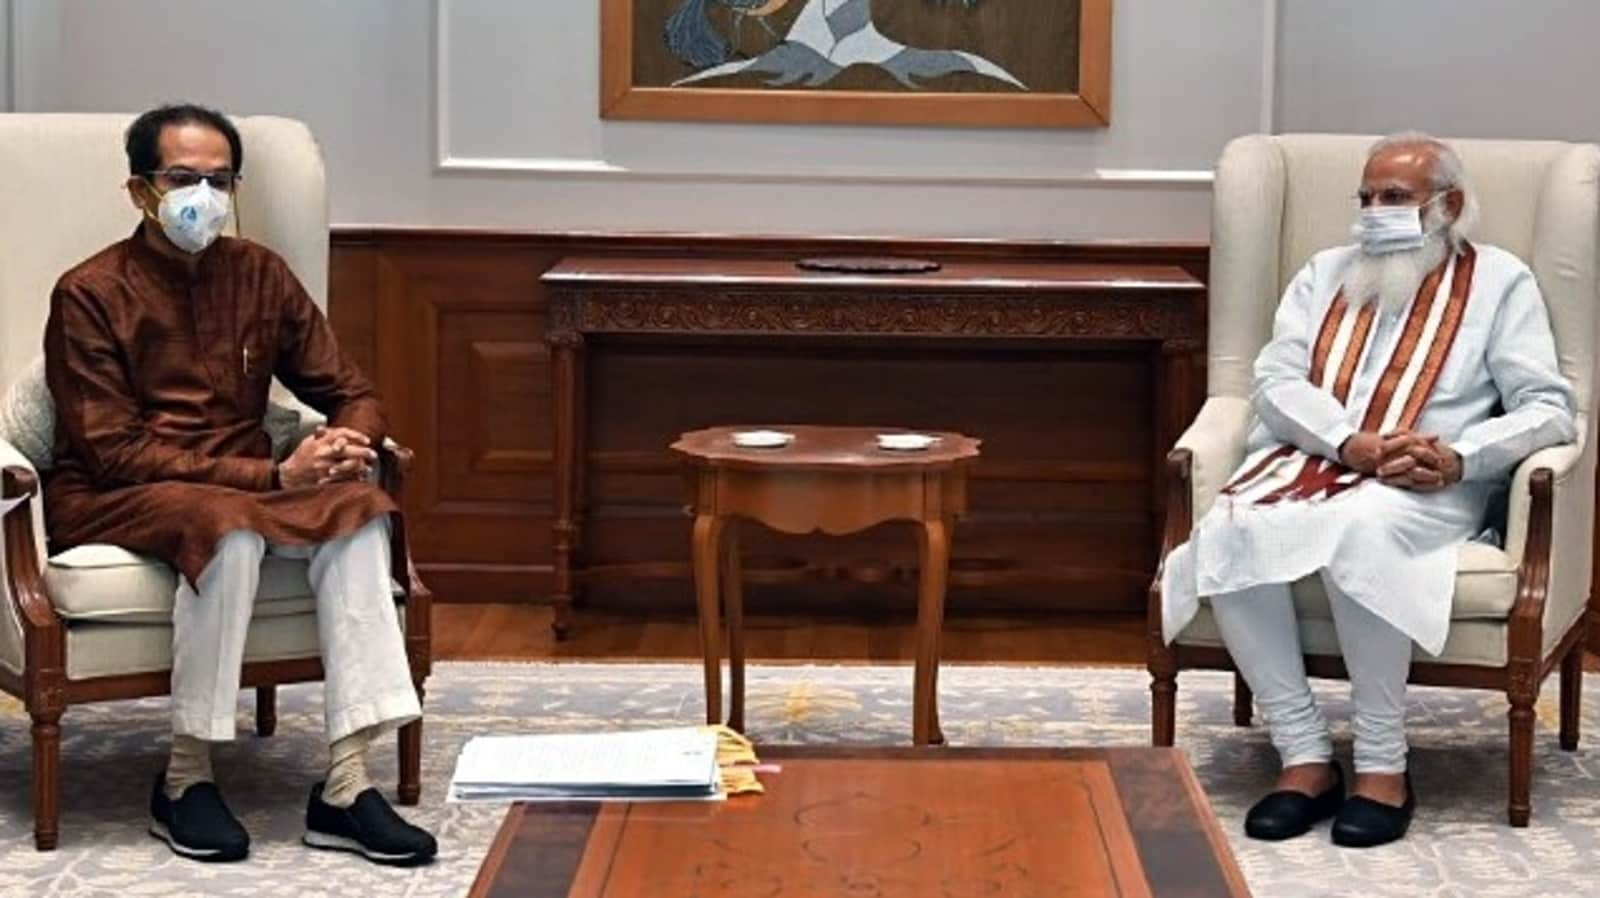 Uddhav Thackeray's one-on-one meeting with PM Modi 'nothing to be afraid  of', says MVA   Hindustan Times